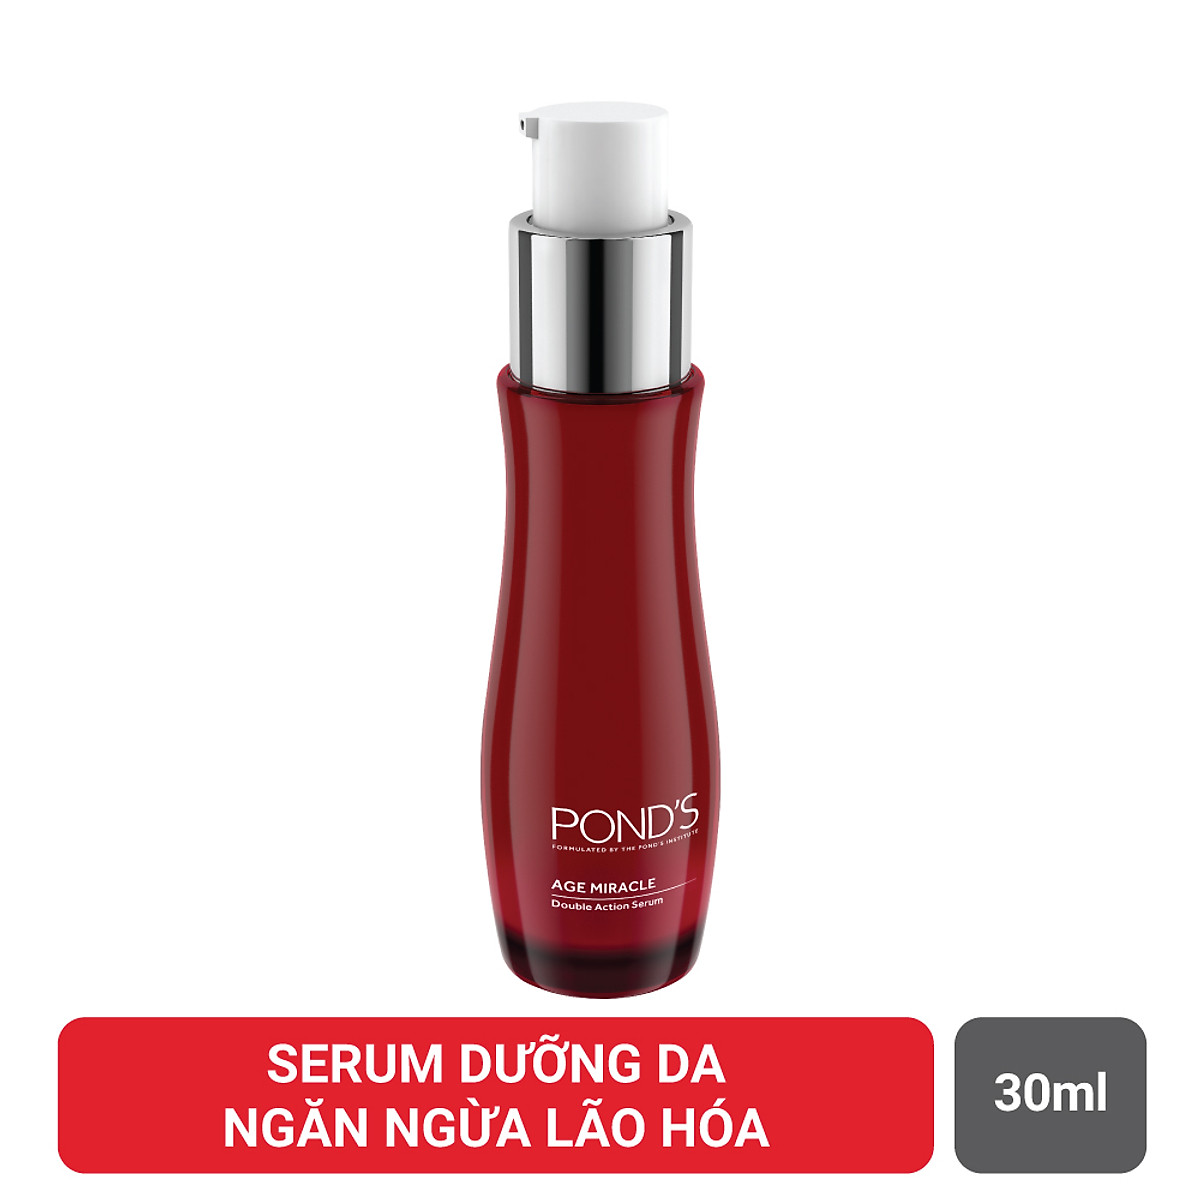 Serum ngăn ngừa lão hóa Pond's Age Miracle Double Action